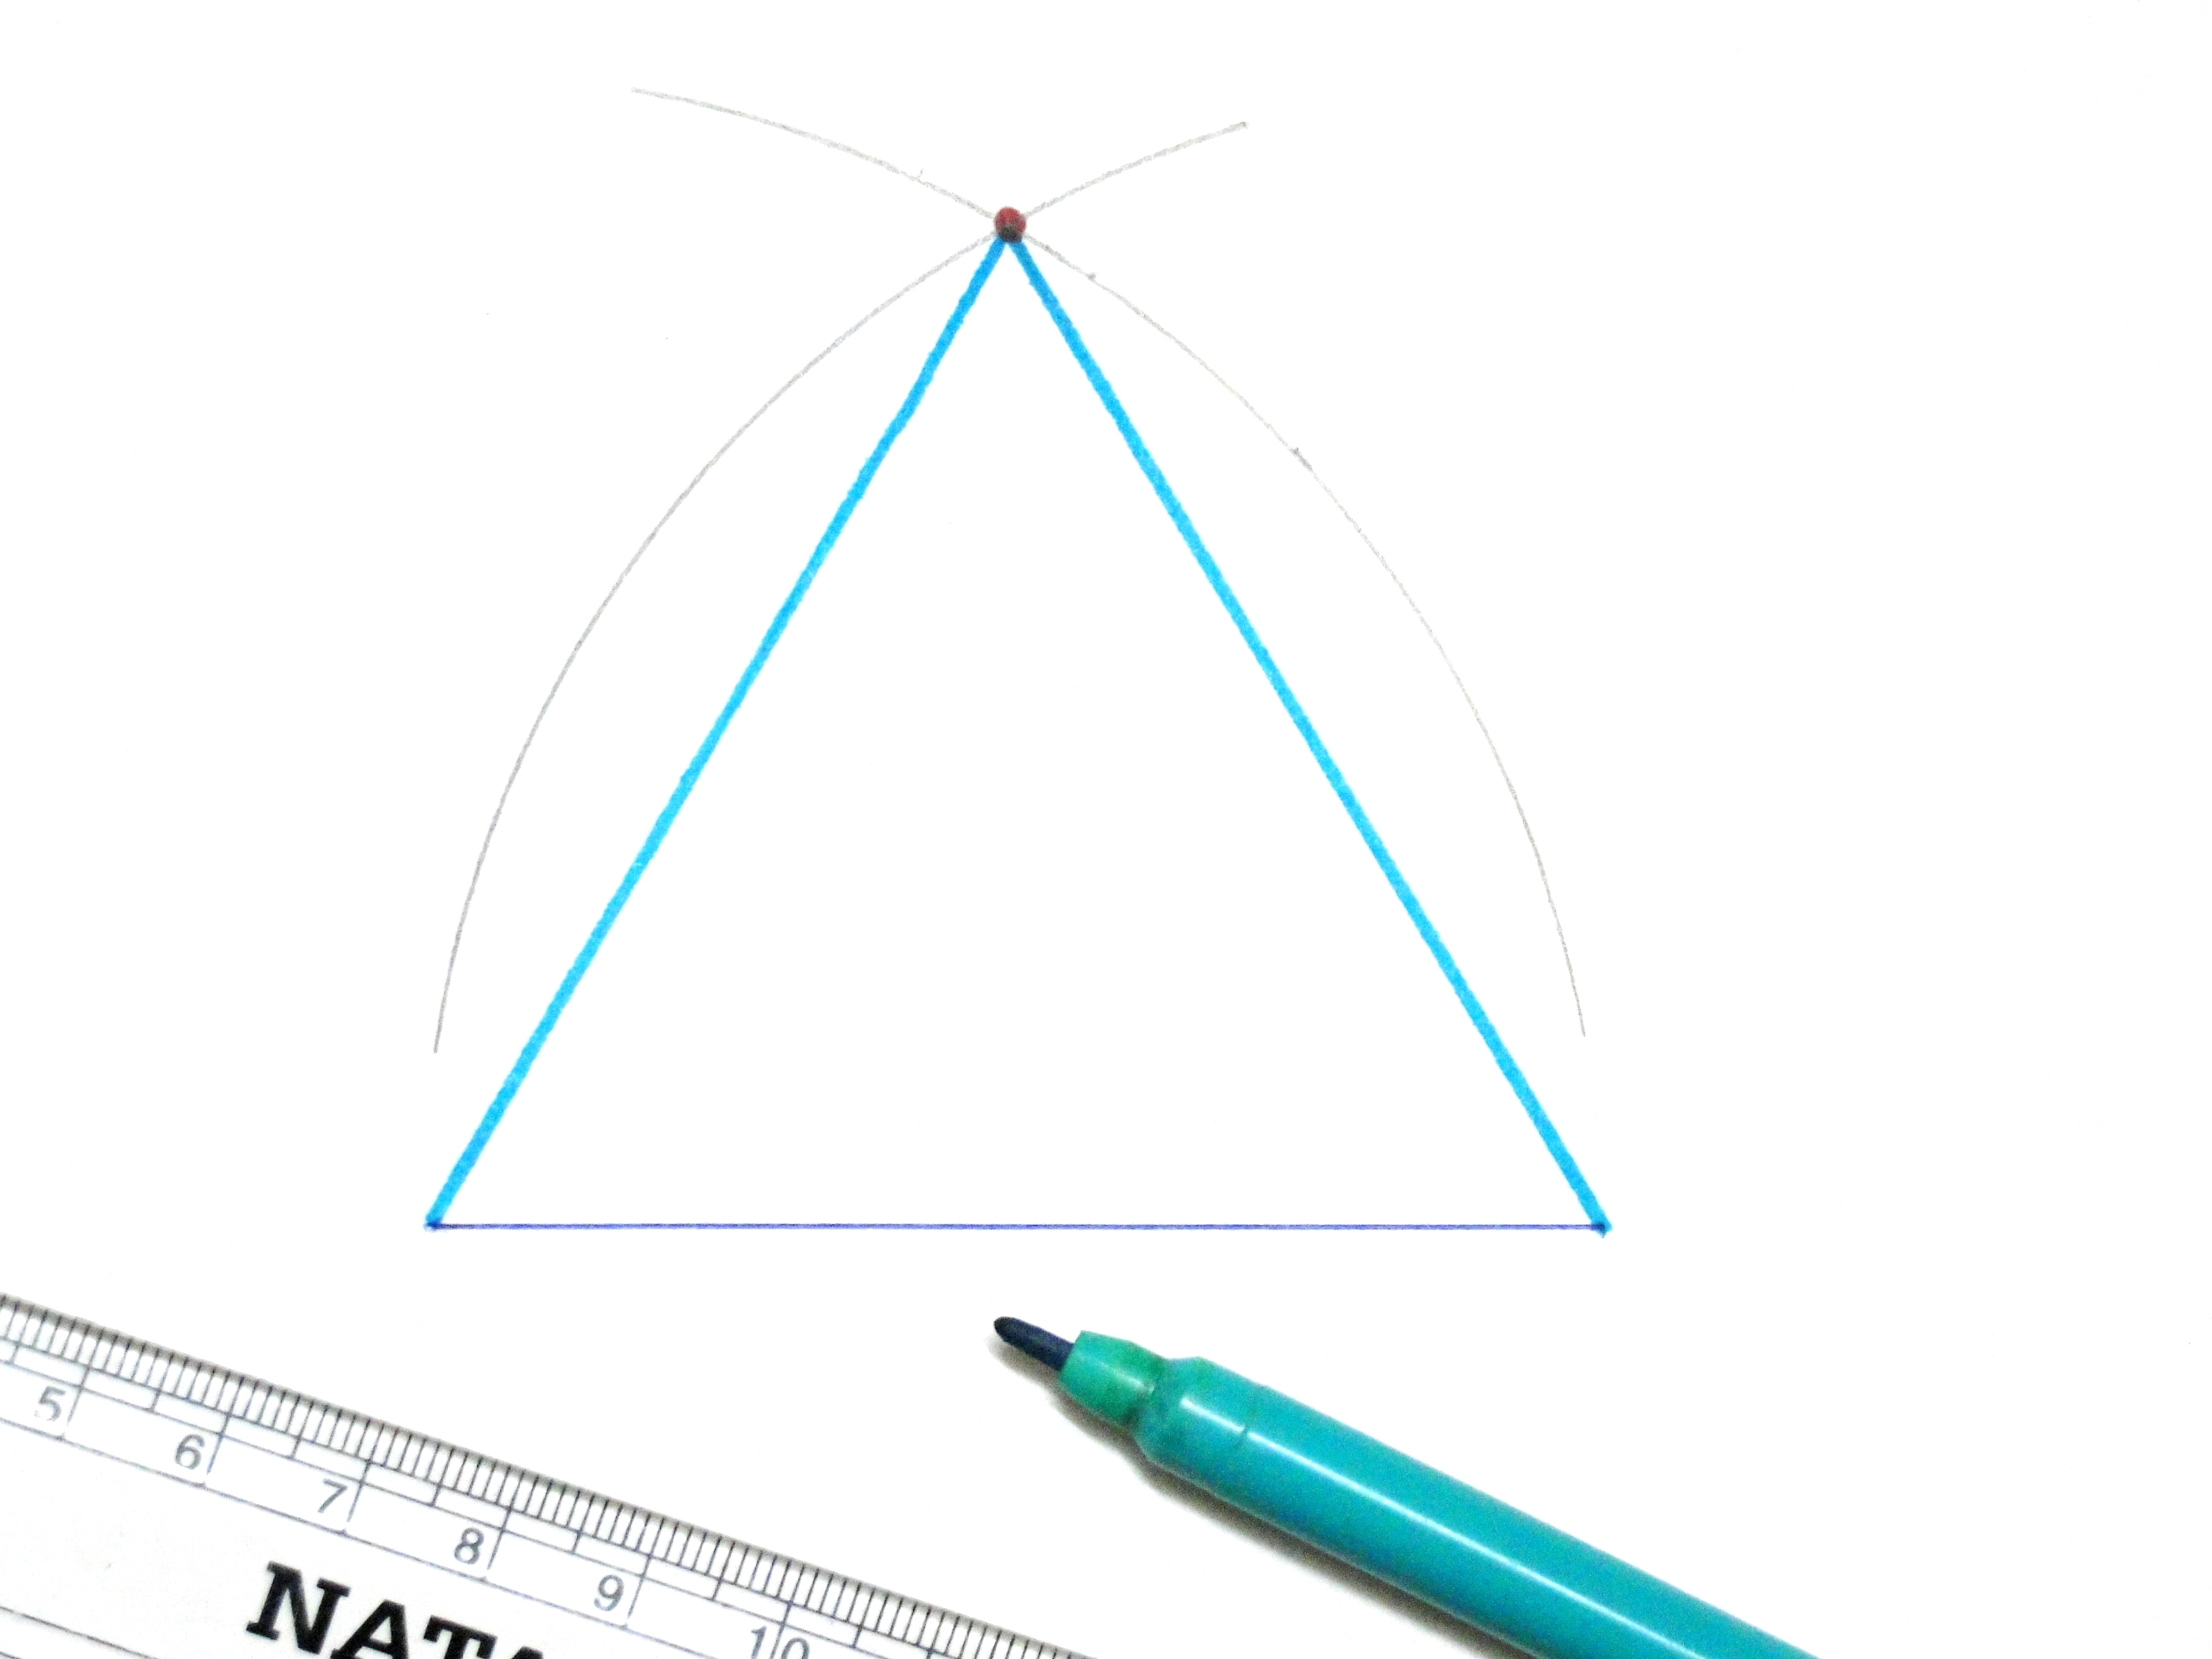 How To Draw An Equilateral Triangle 11 Steps With Pictures